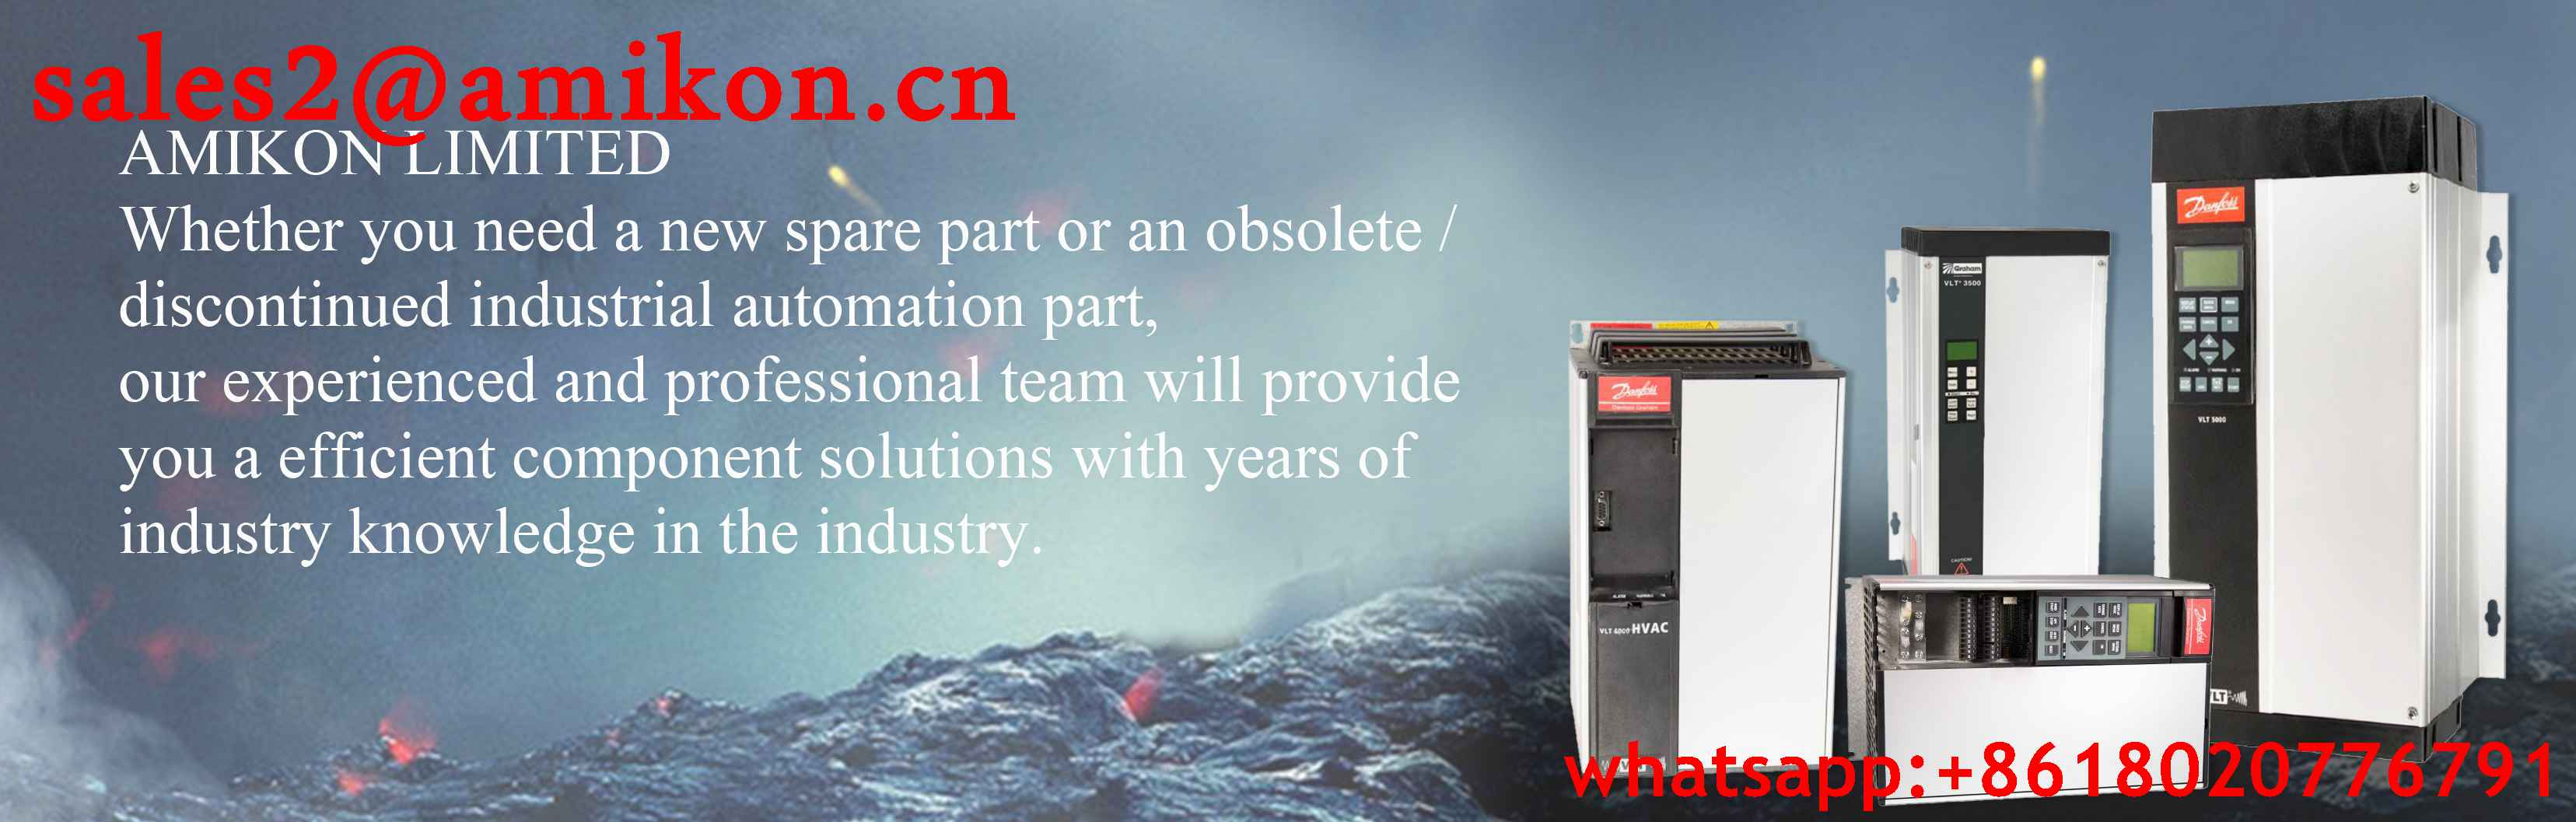 IC697MEM715 GE General Electric sales2@amikon.cn PLC DCS Industry Control System Module